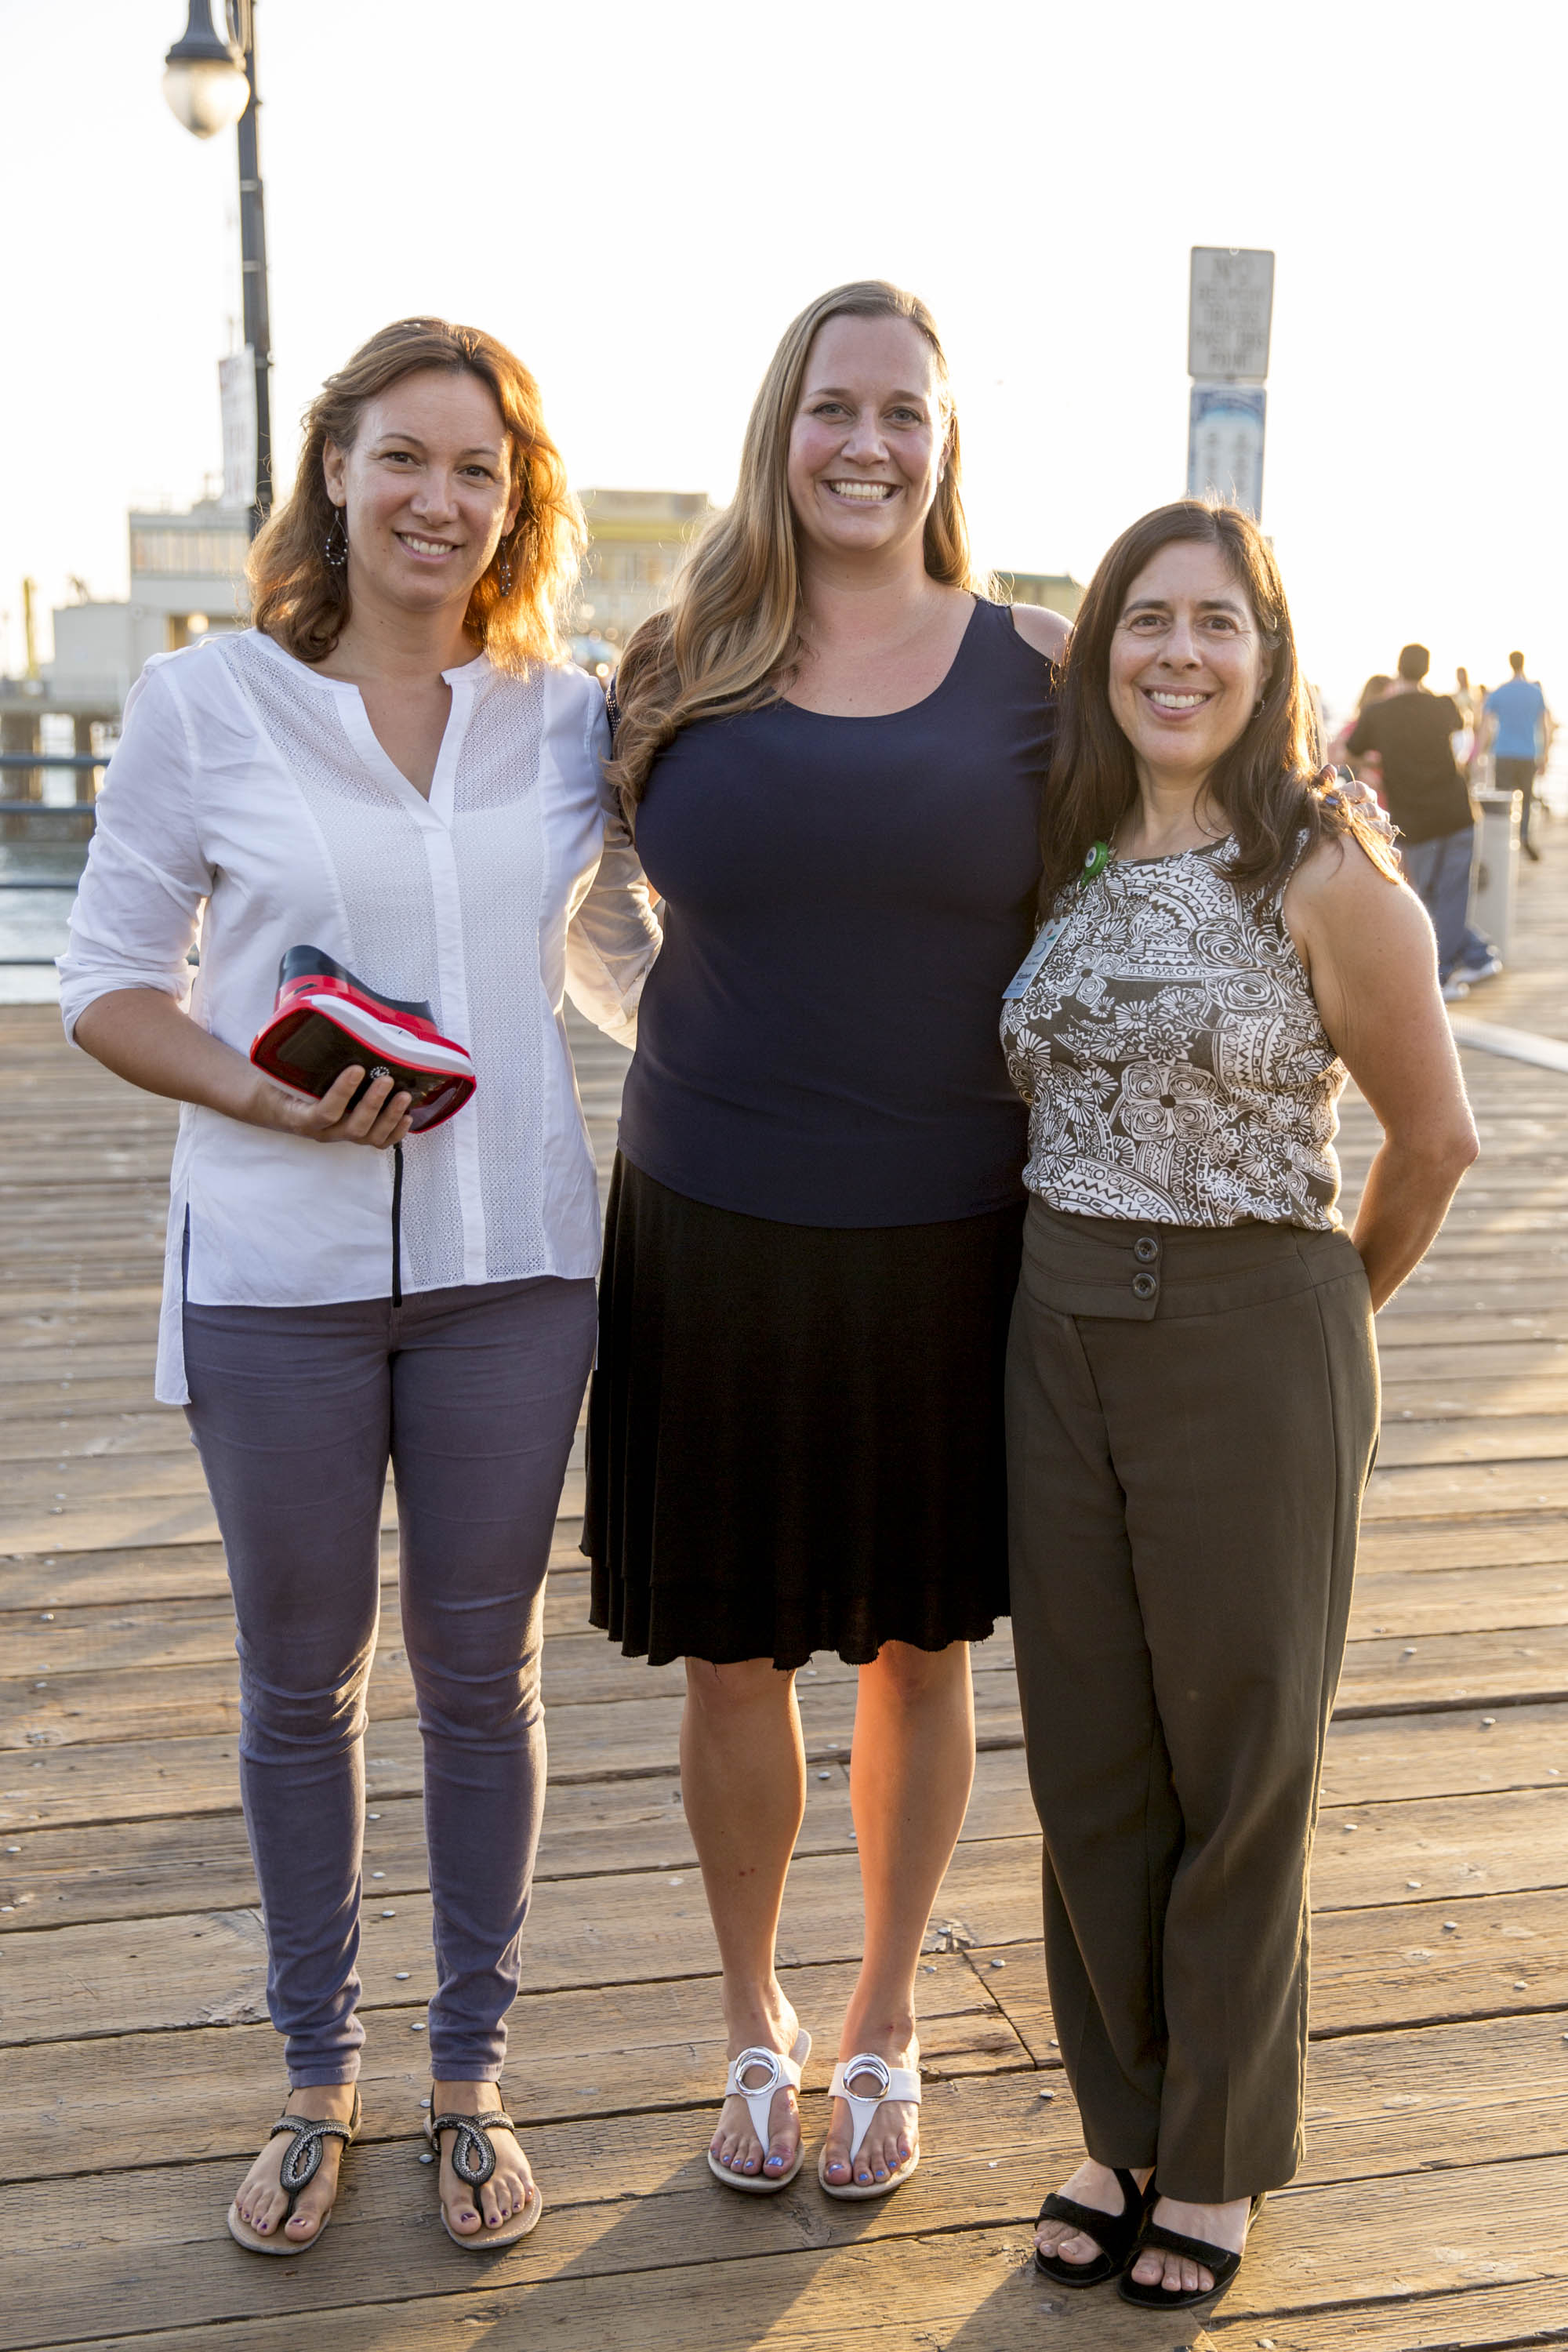 Juliette Finzi Hart, U.S. Geological Survey; Karina Johnston, TBF Dir. of Watershed Programs ; Elizabeth Bar-El, Sr. Planner for City of Santa Monica